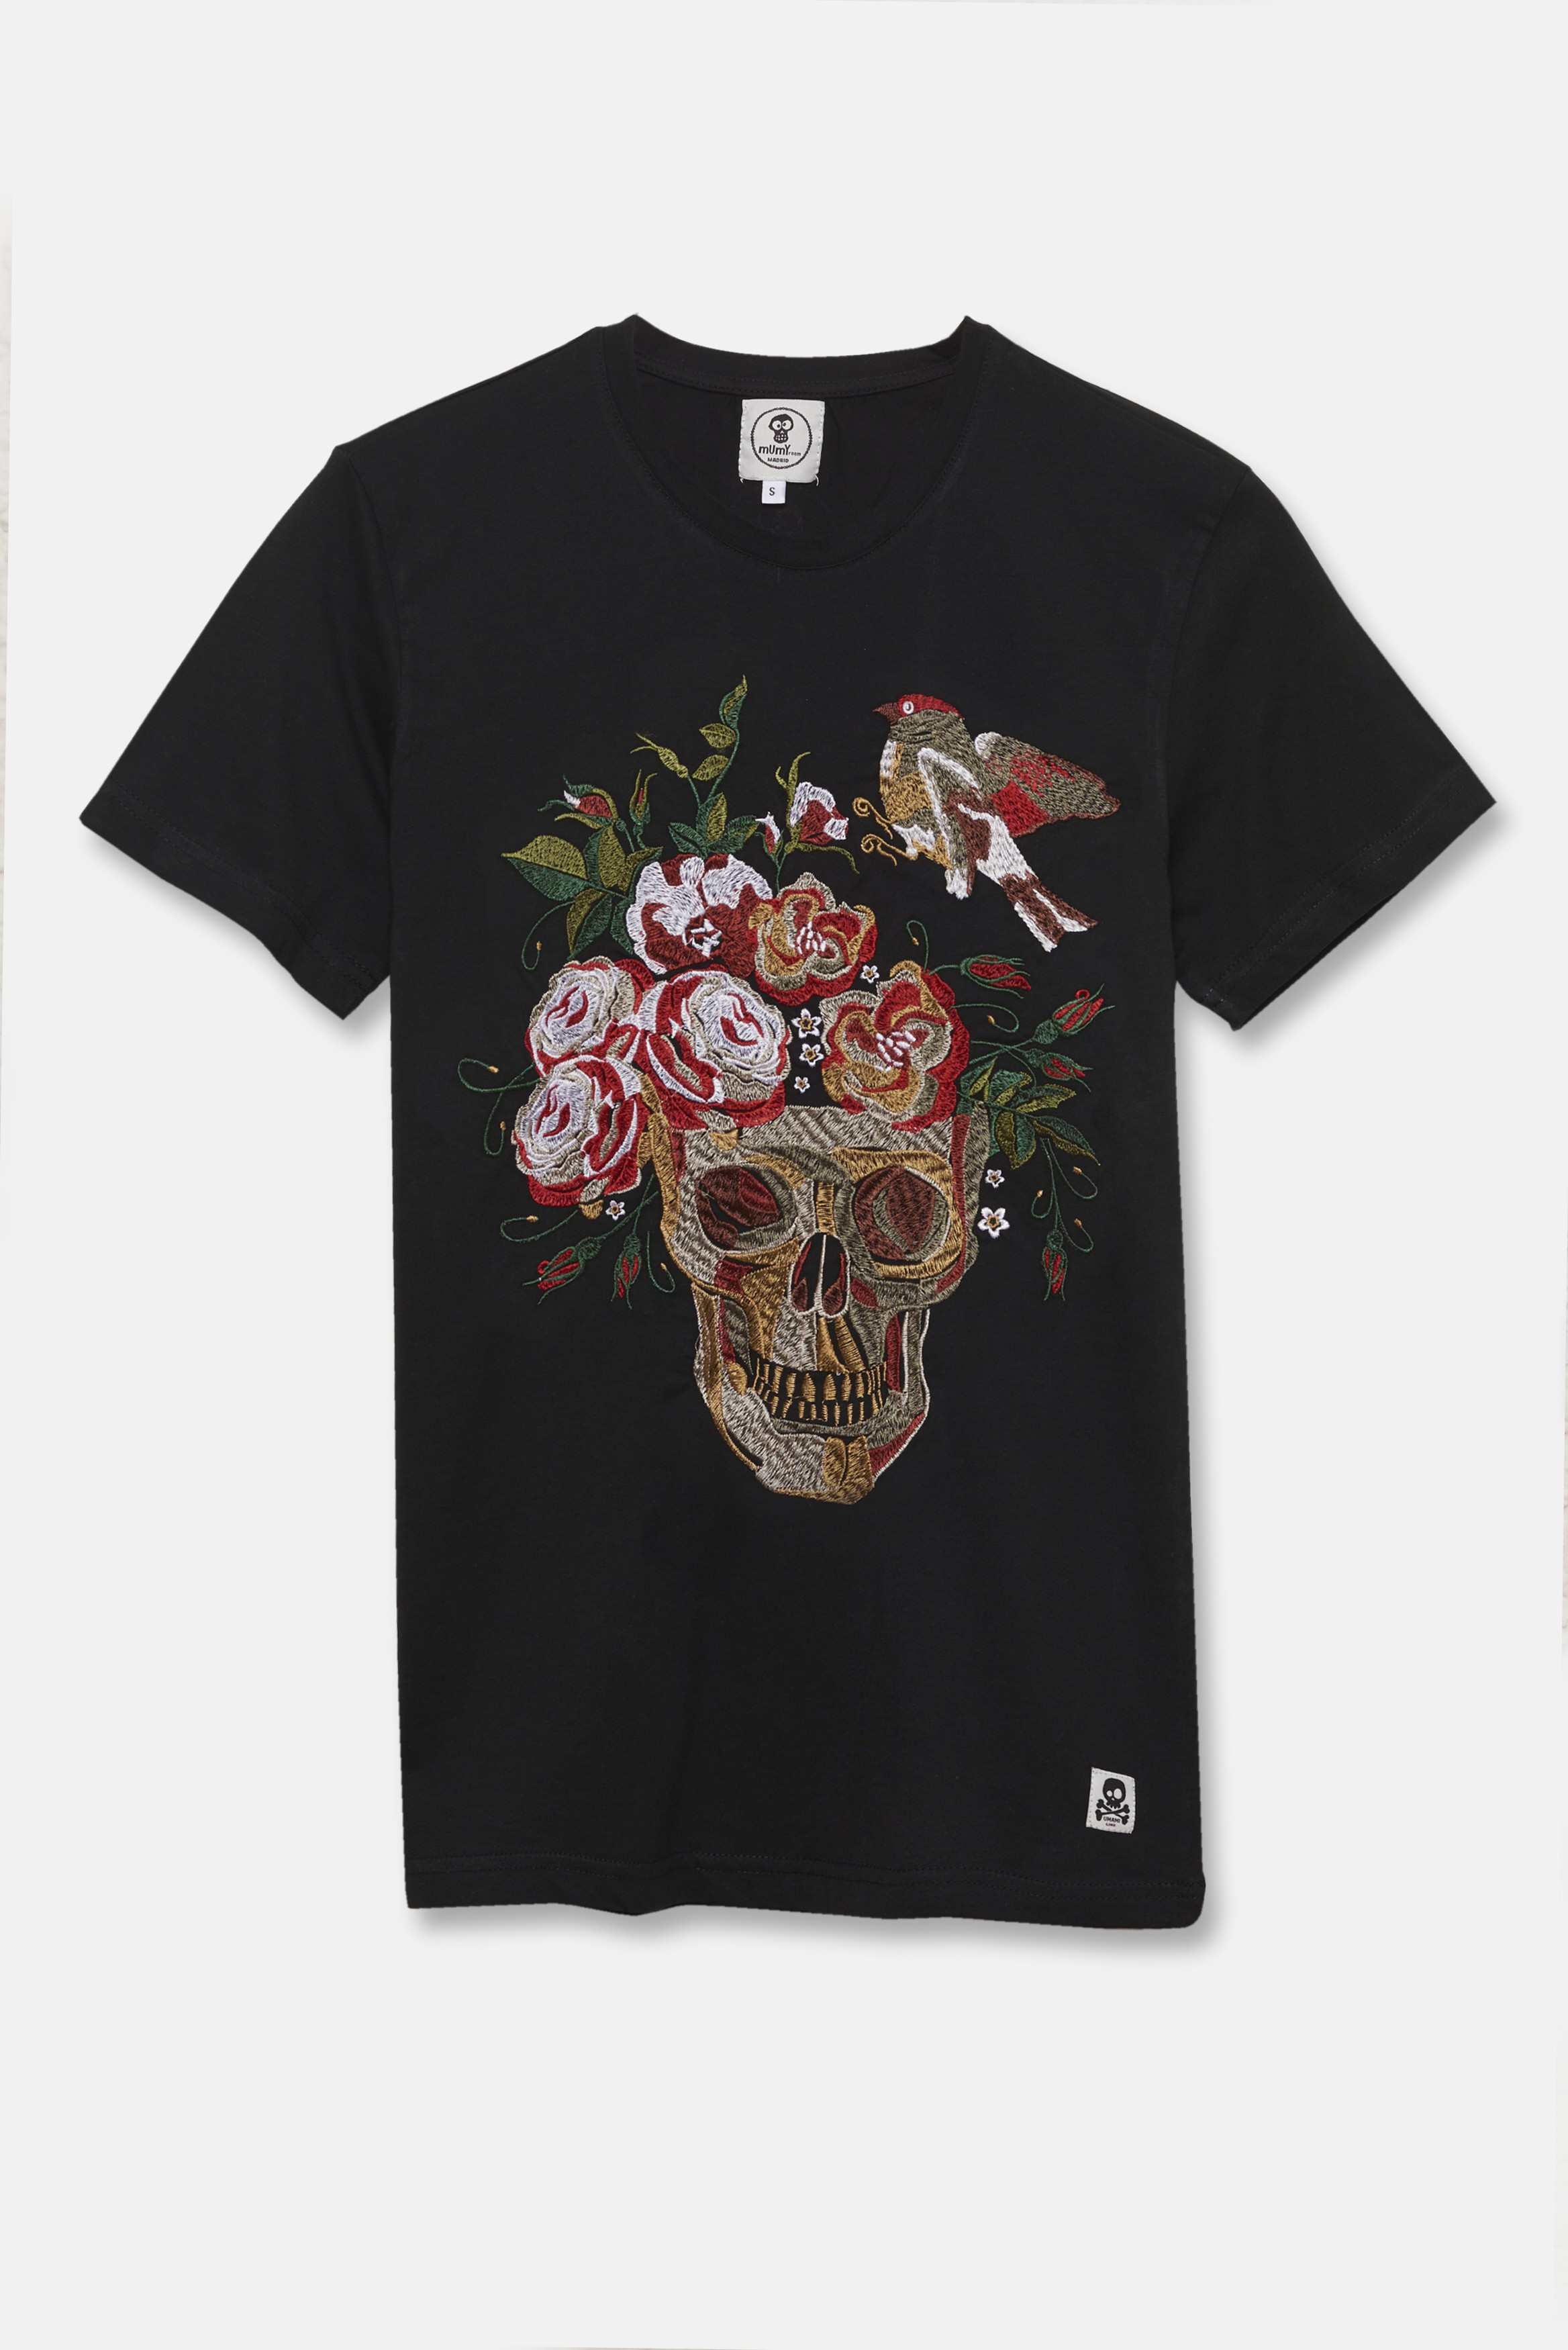 ADULT´S EMBROIDERED T-SHIRT SKULL AND BIRD IN BLACK